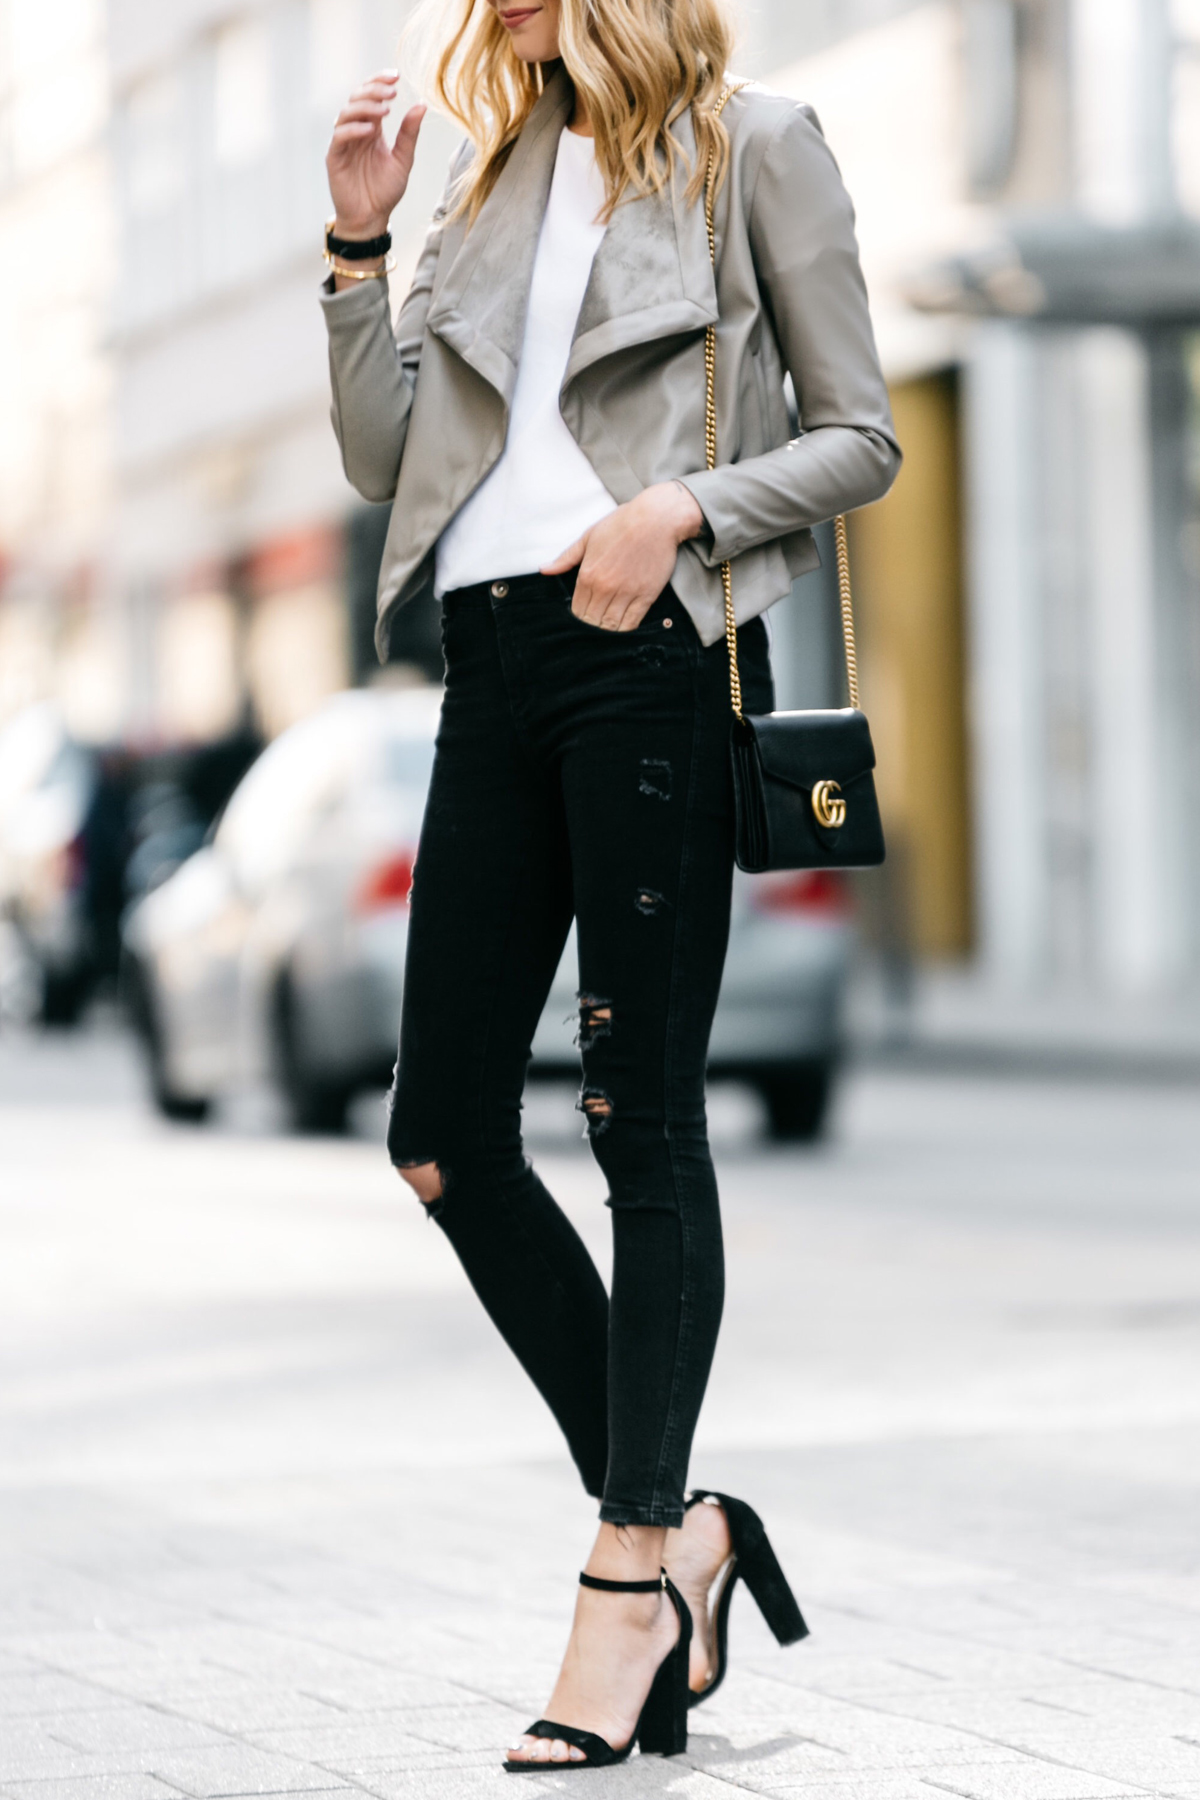 Fashion Jackson, Dallas Blogger, Fashion Blogger, Street Style, BB Dakota Peppin Jacket, White Top, Black Ripped Skinny Jeans, Gucci Marmont Handbag, Steve Madden Carrson Sandals, Black Ankle Strap Heeled Sandals